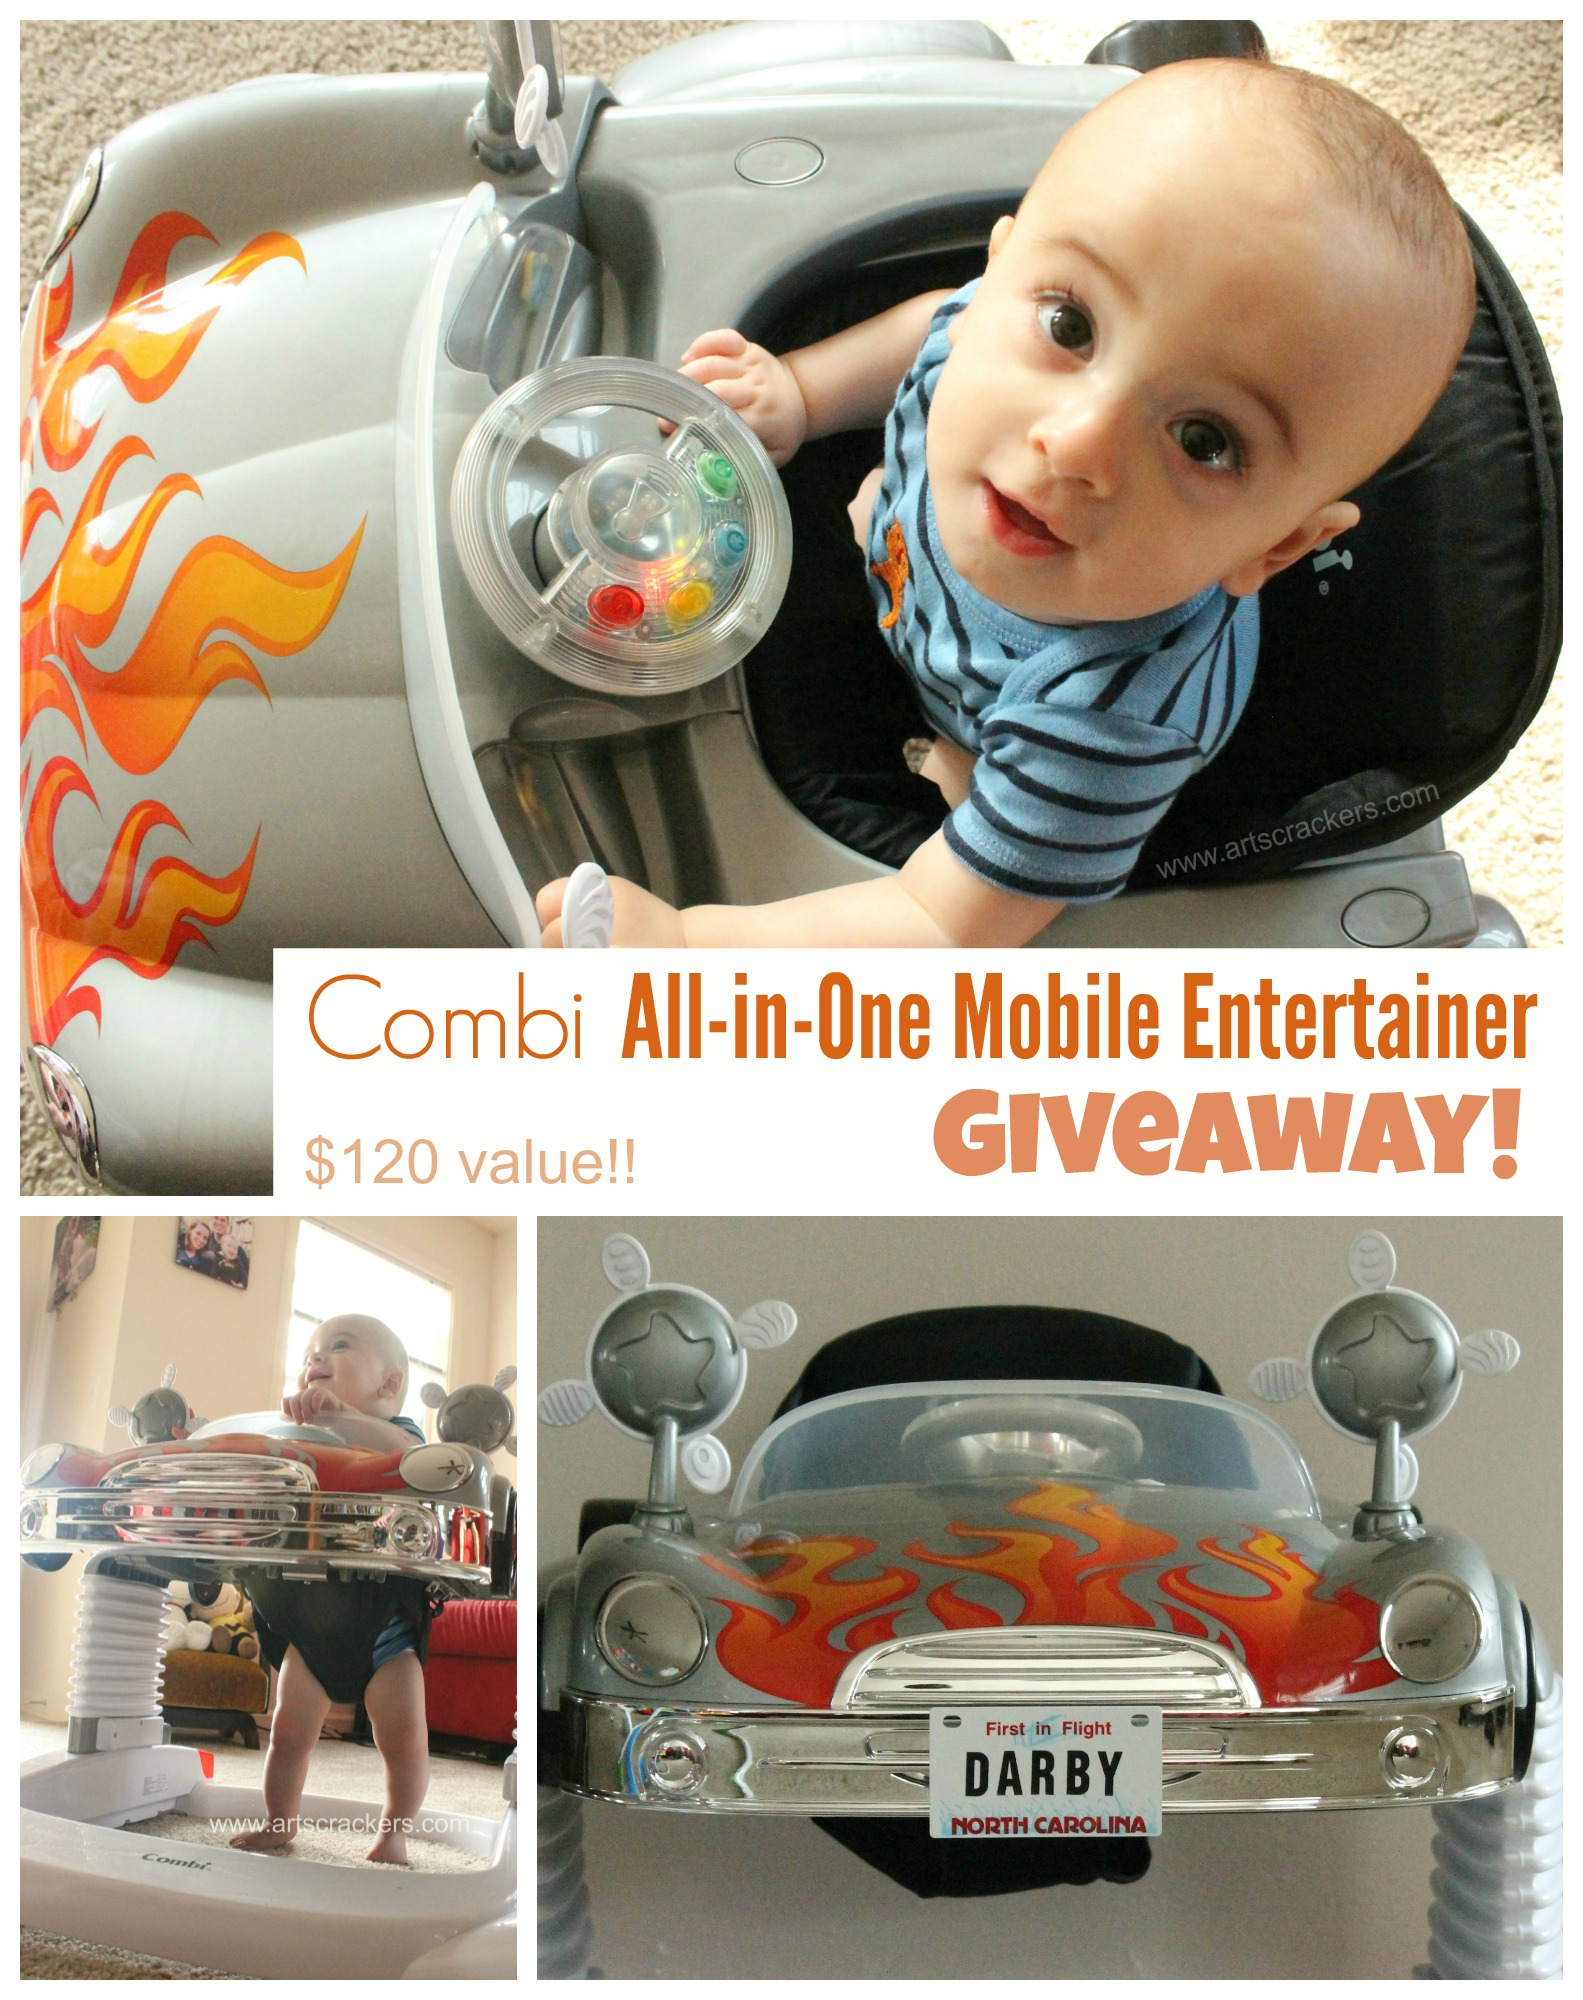 Combi All in One Mobile Entertainer Giveaway